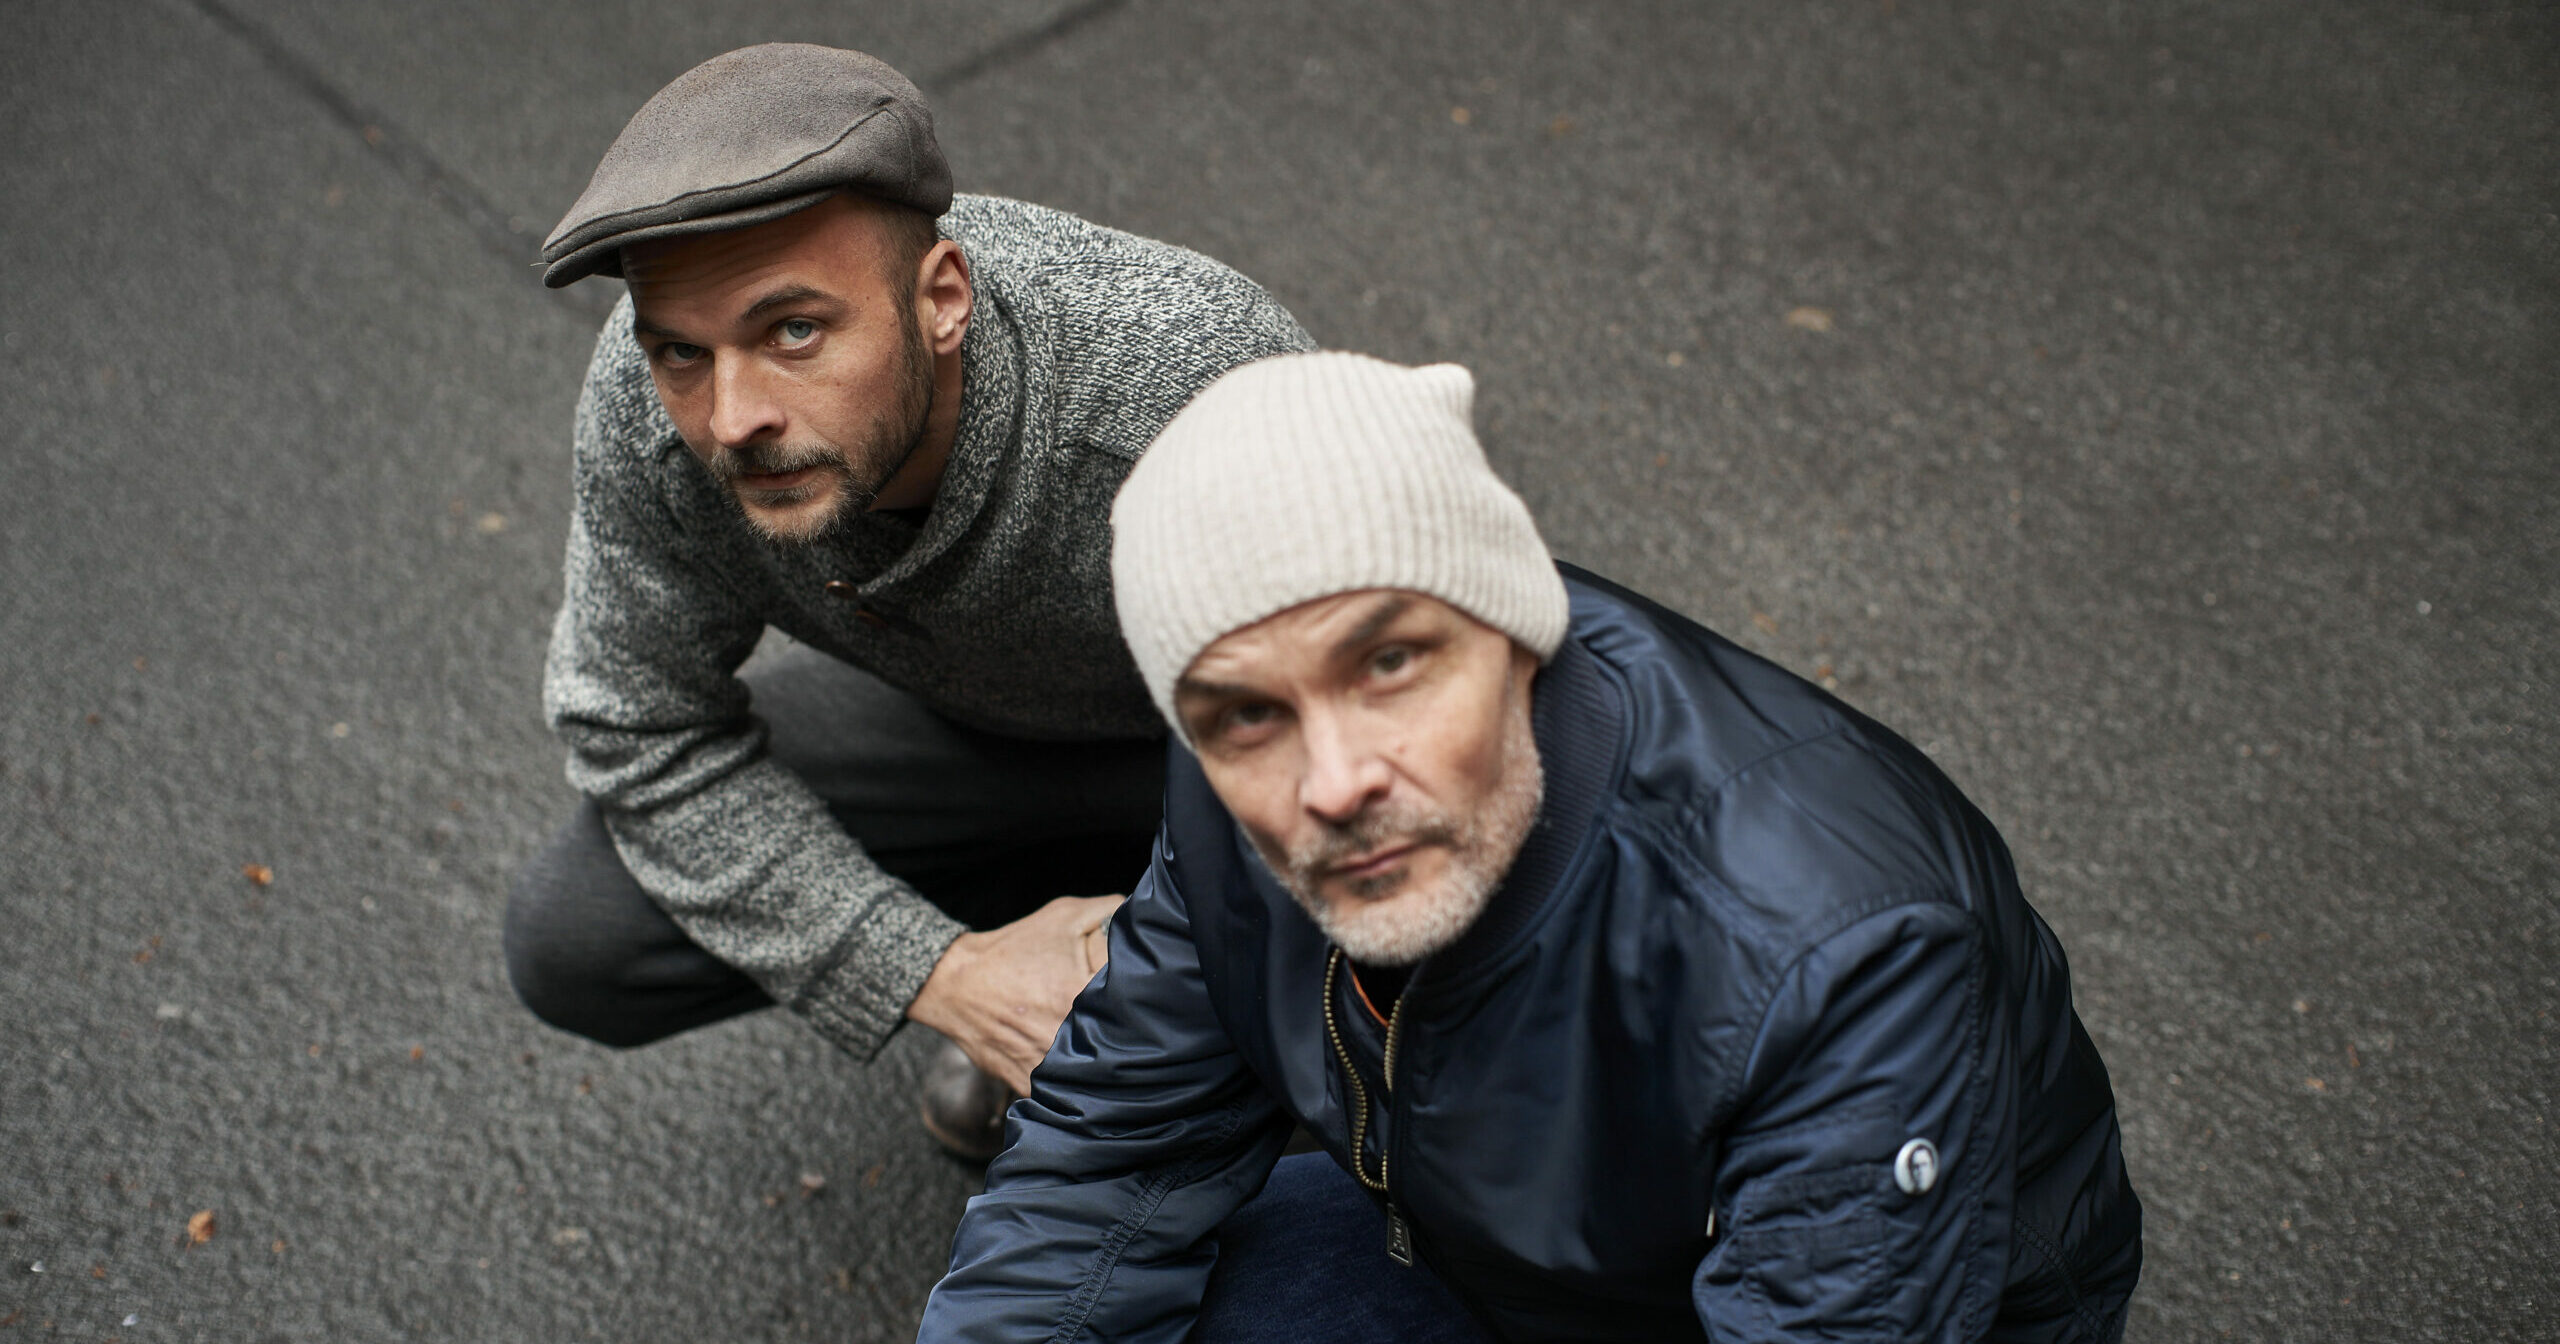 F.S. Blumm and Nils Frahm Announce Collaborative Album, Share New Song